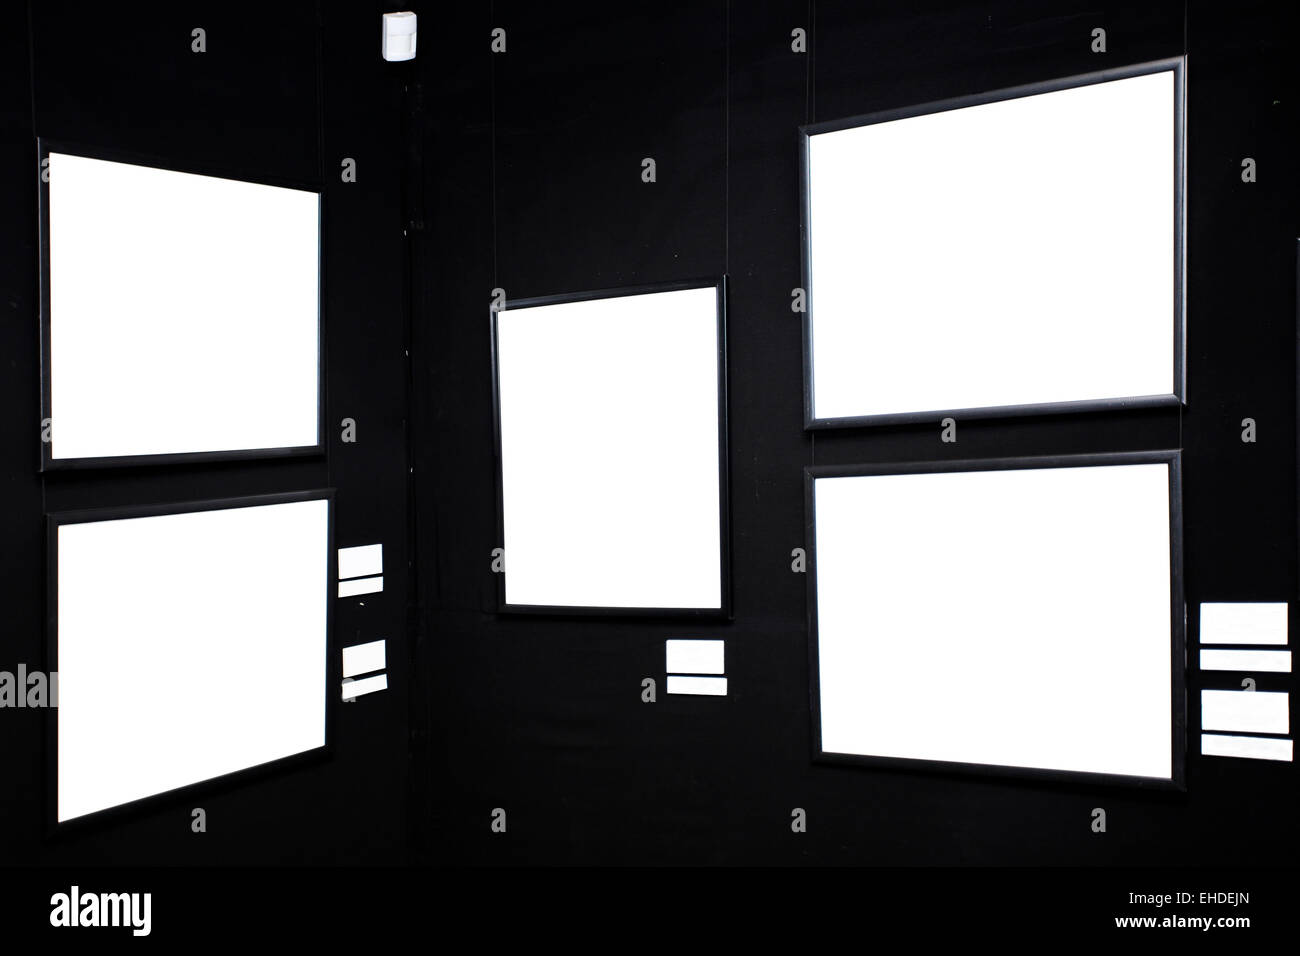 black wall in museum with empty frames Stock Photo: 79587501 - Alamy